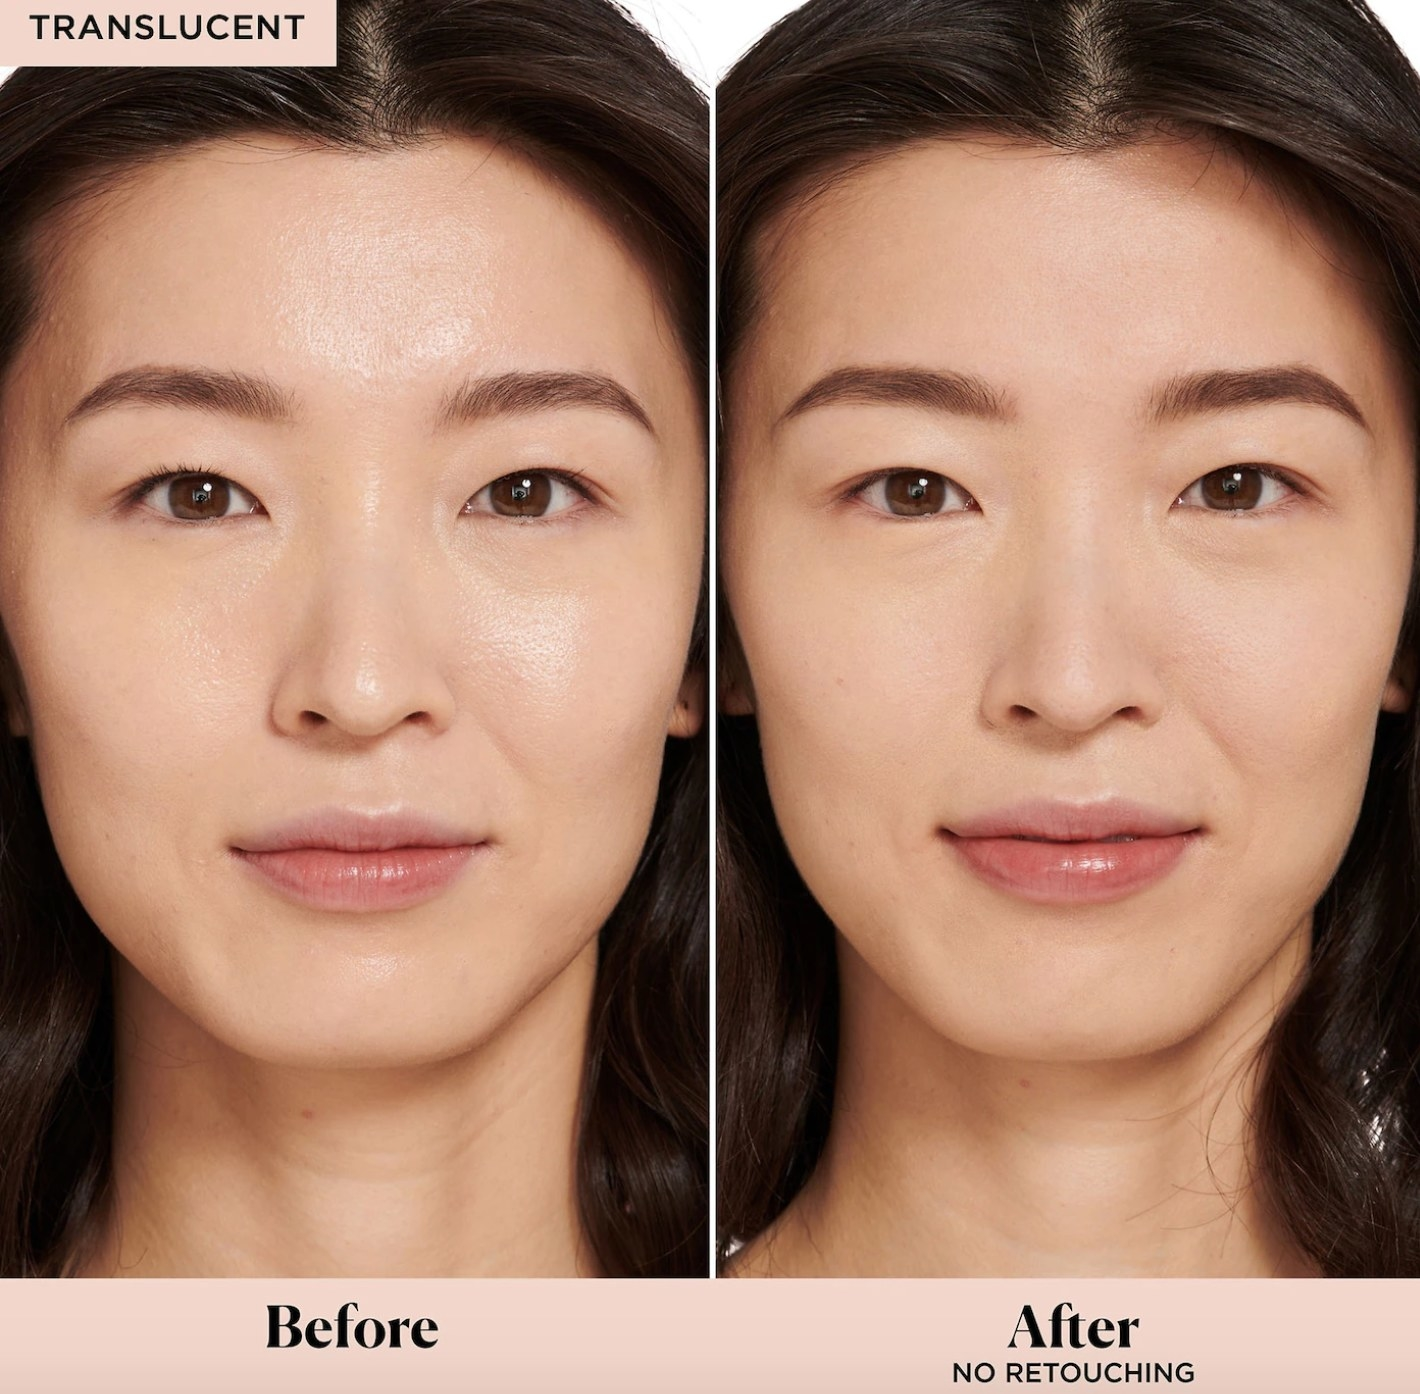 Before and after of model wearing Laura Mercier settting powder